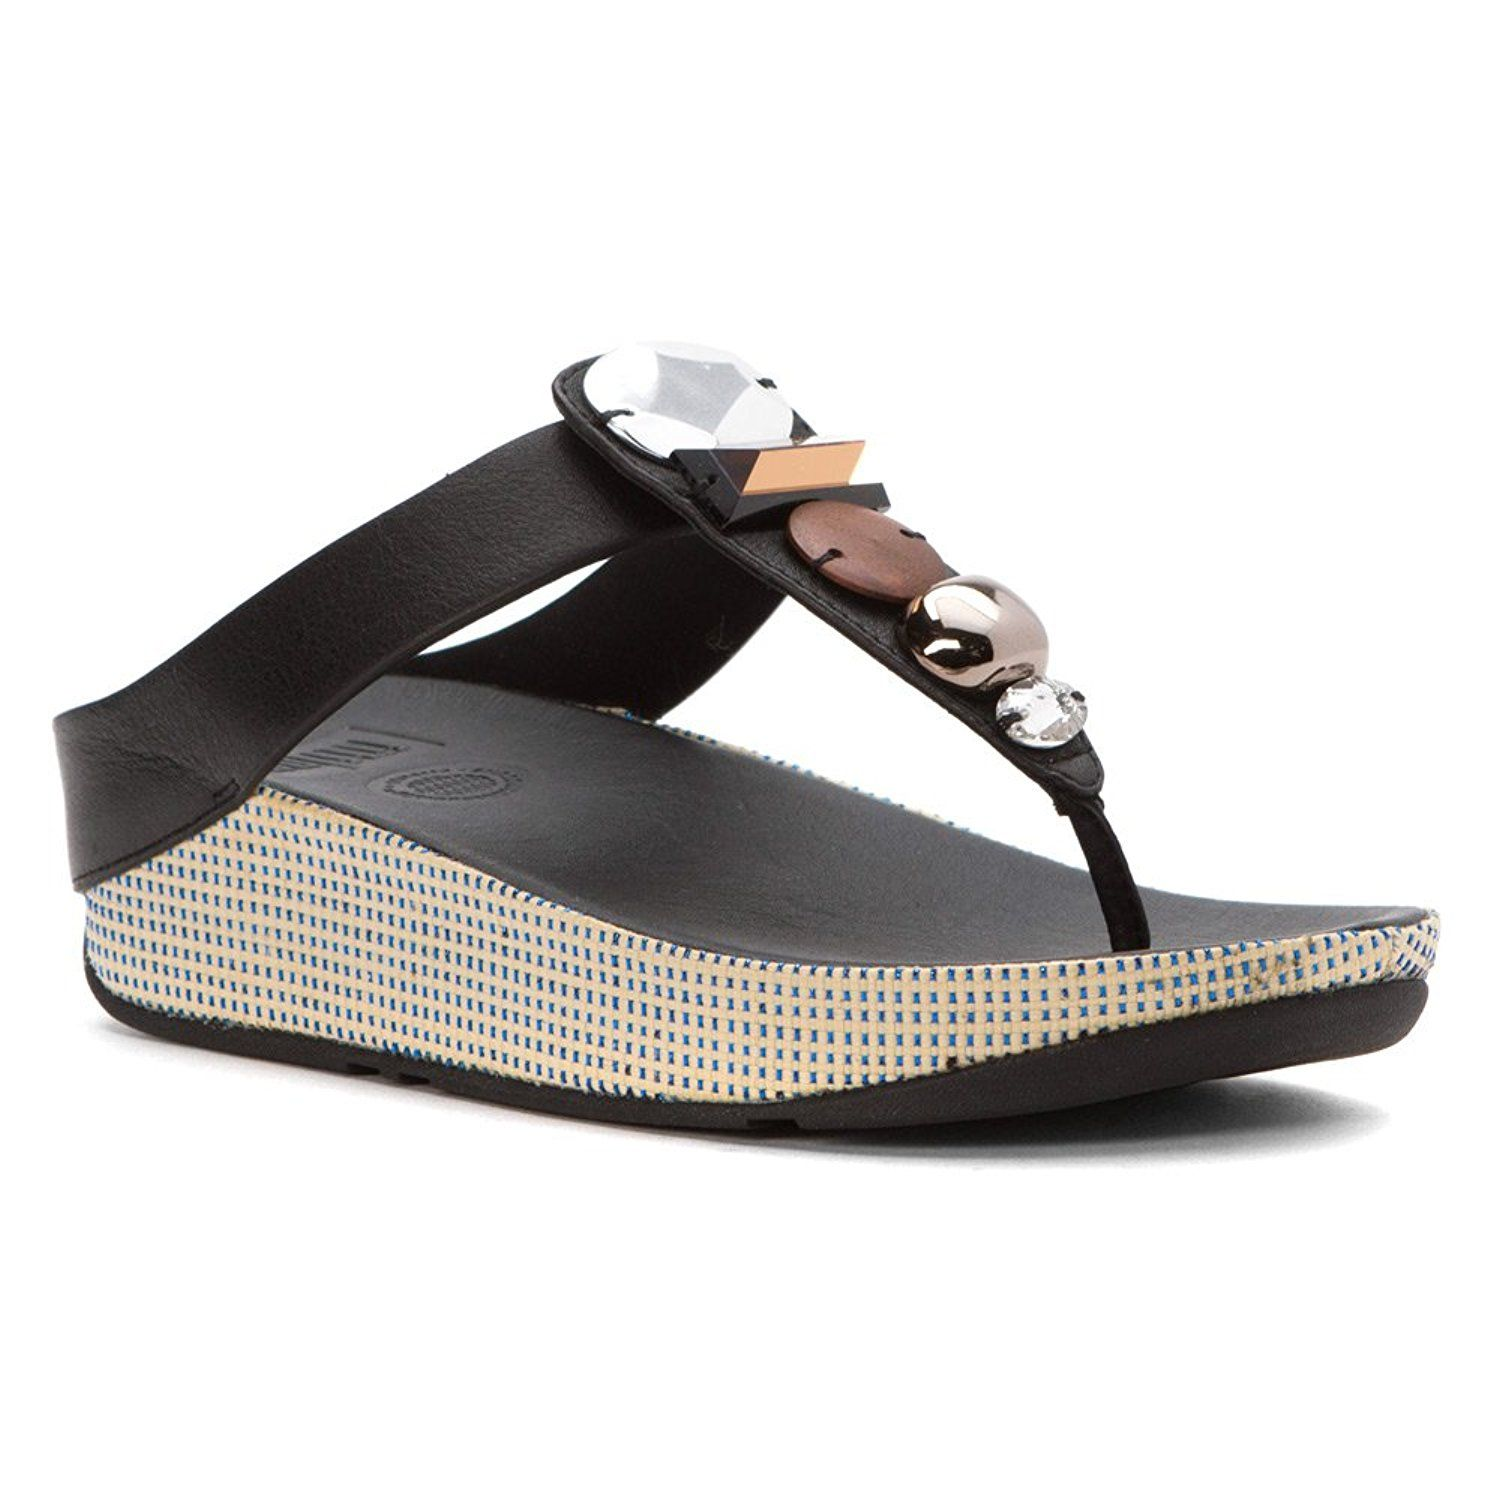 7222d3a1cfac FitFlop Women s Jeweley Toe-Post Flip Flop   Quickly view this special  product